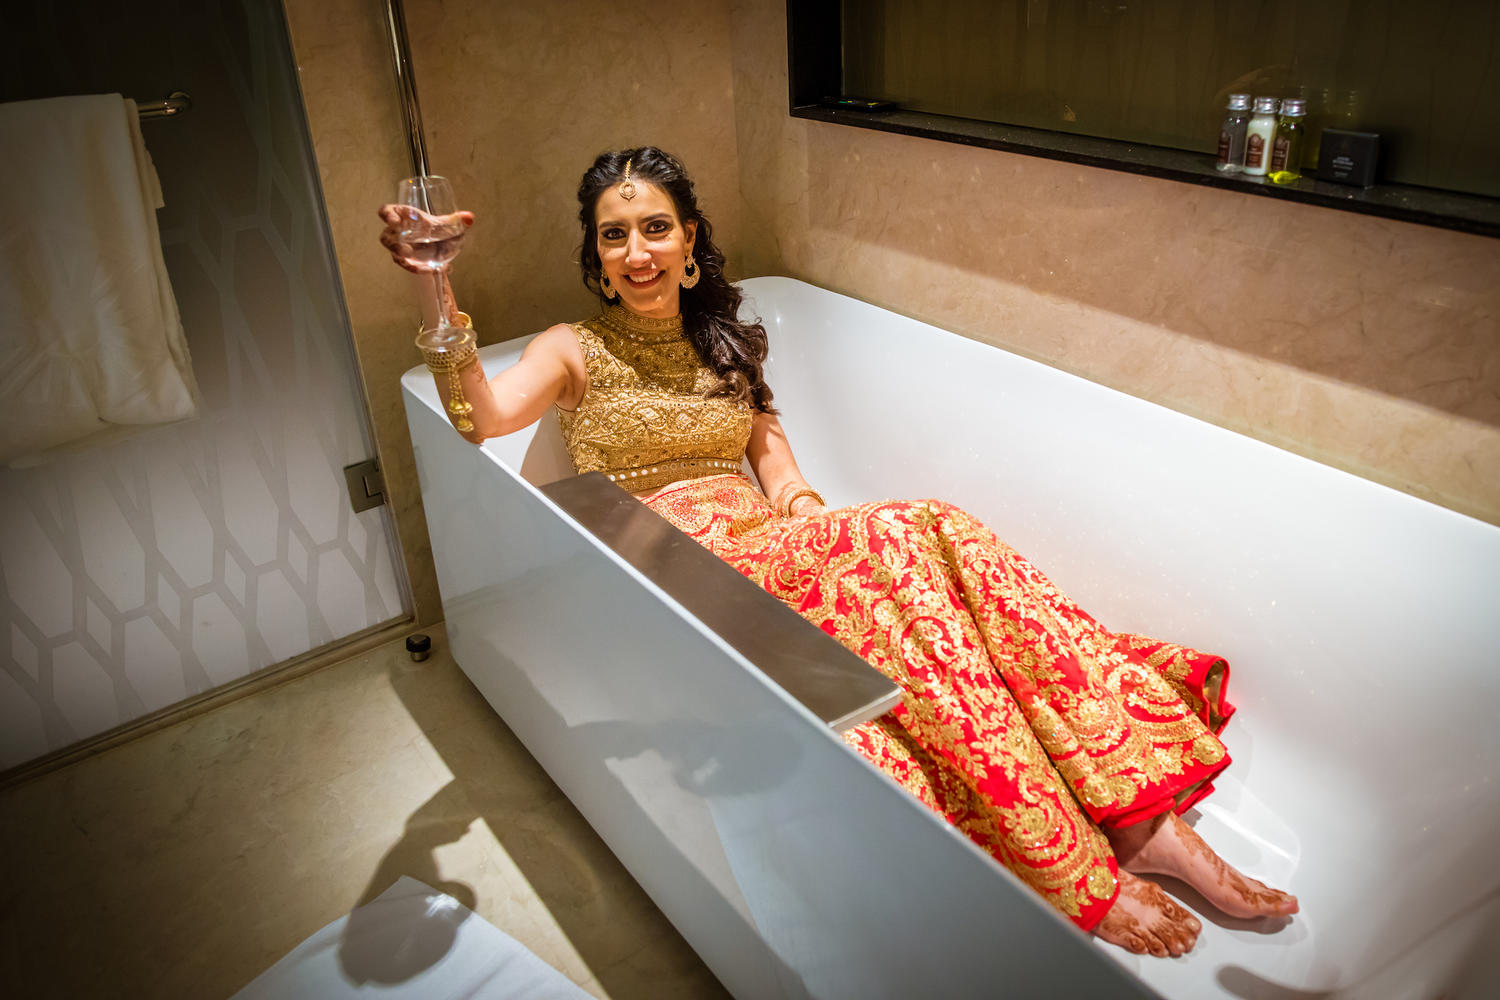 unique bridal portrait in a bathtub of 5star hotel sipping wine